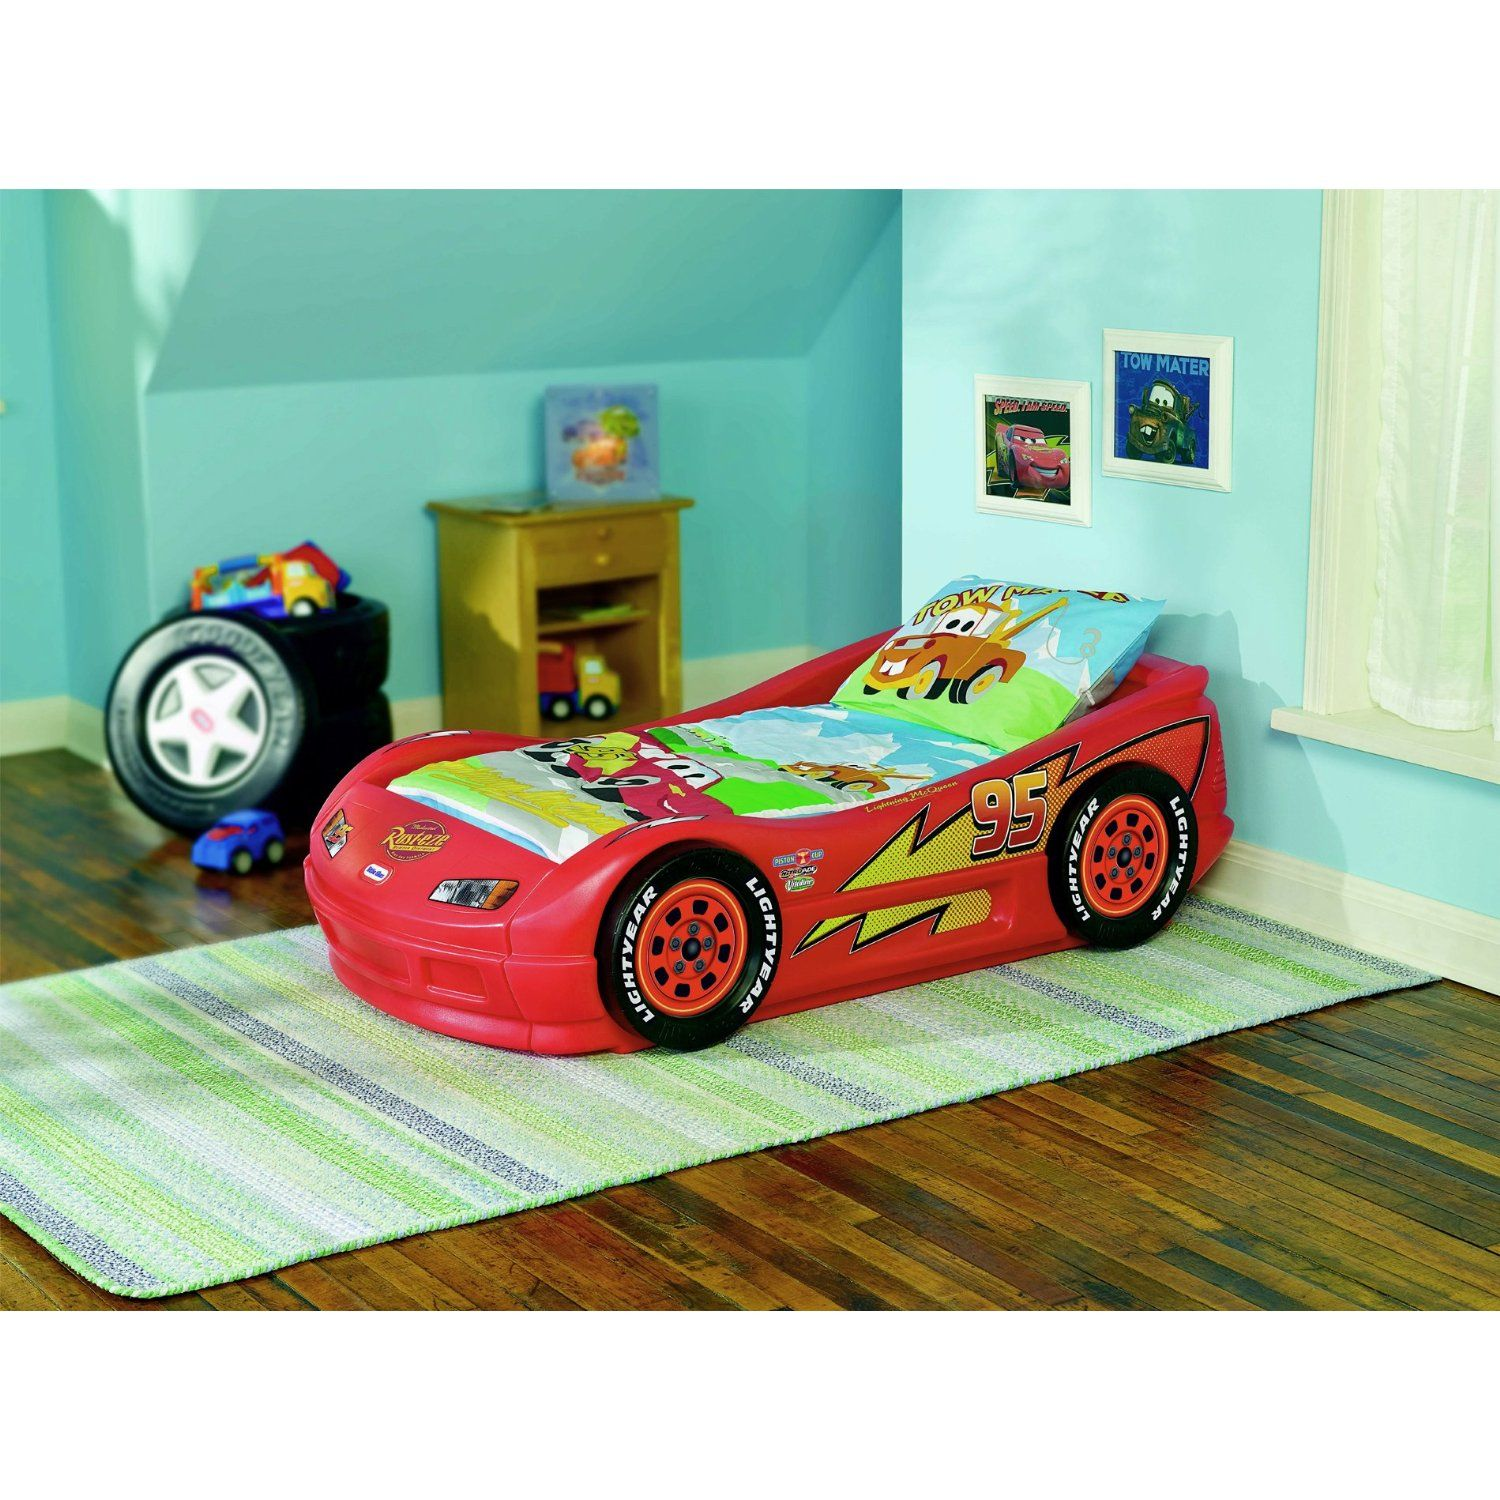 Toddler bed? Lightning mcqueen toddler bed, Kids bedroom